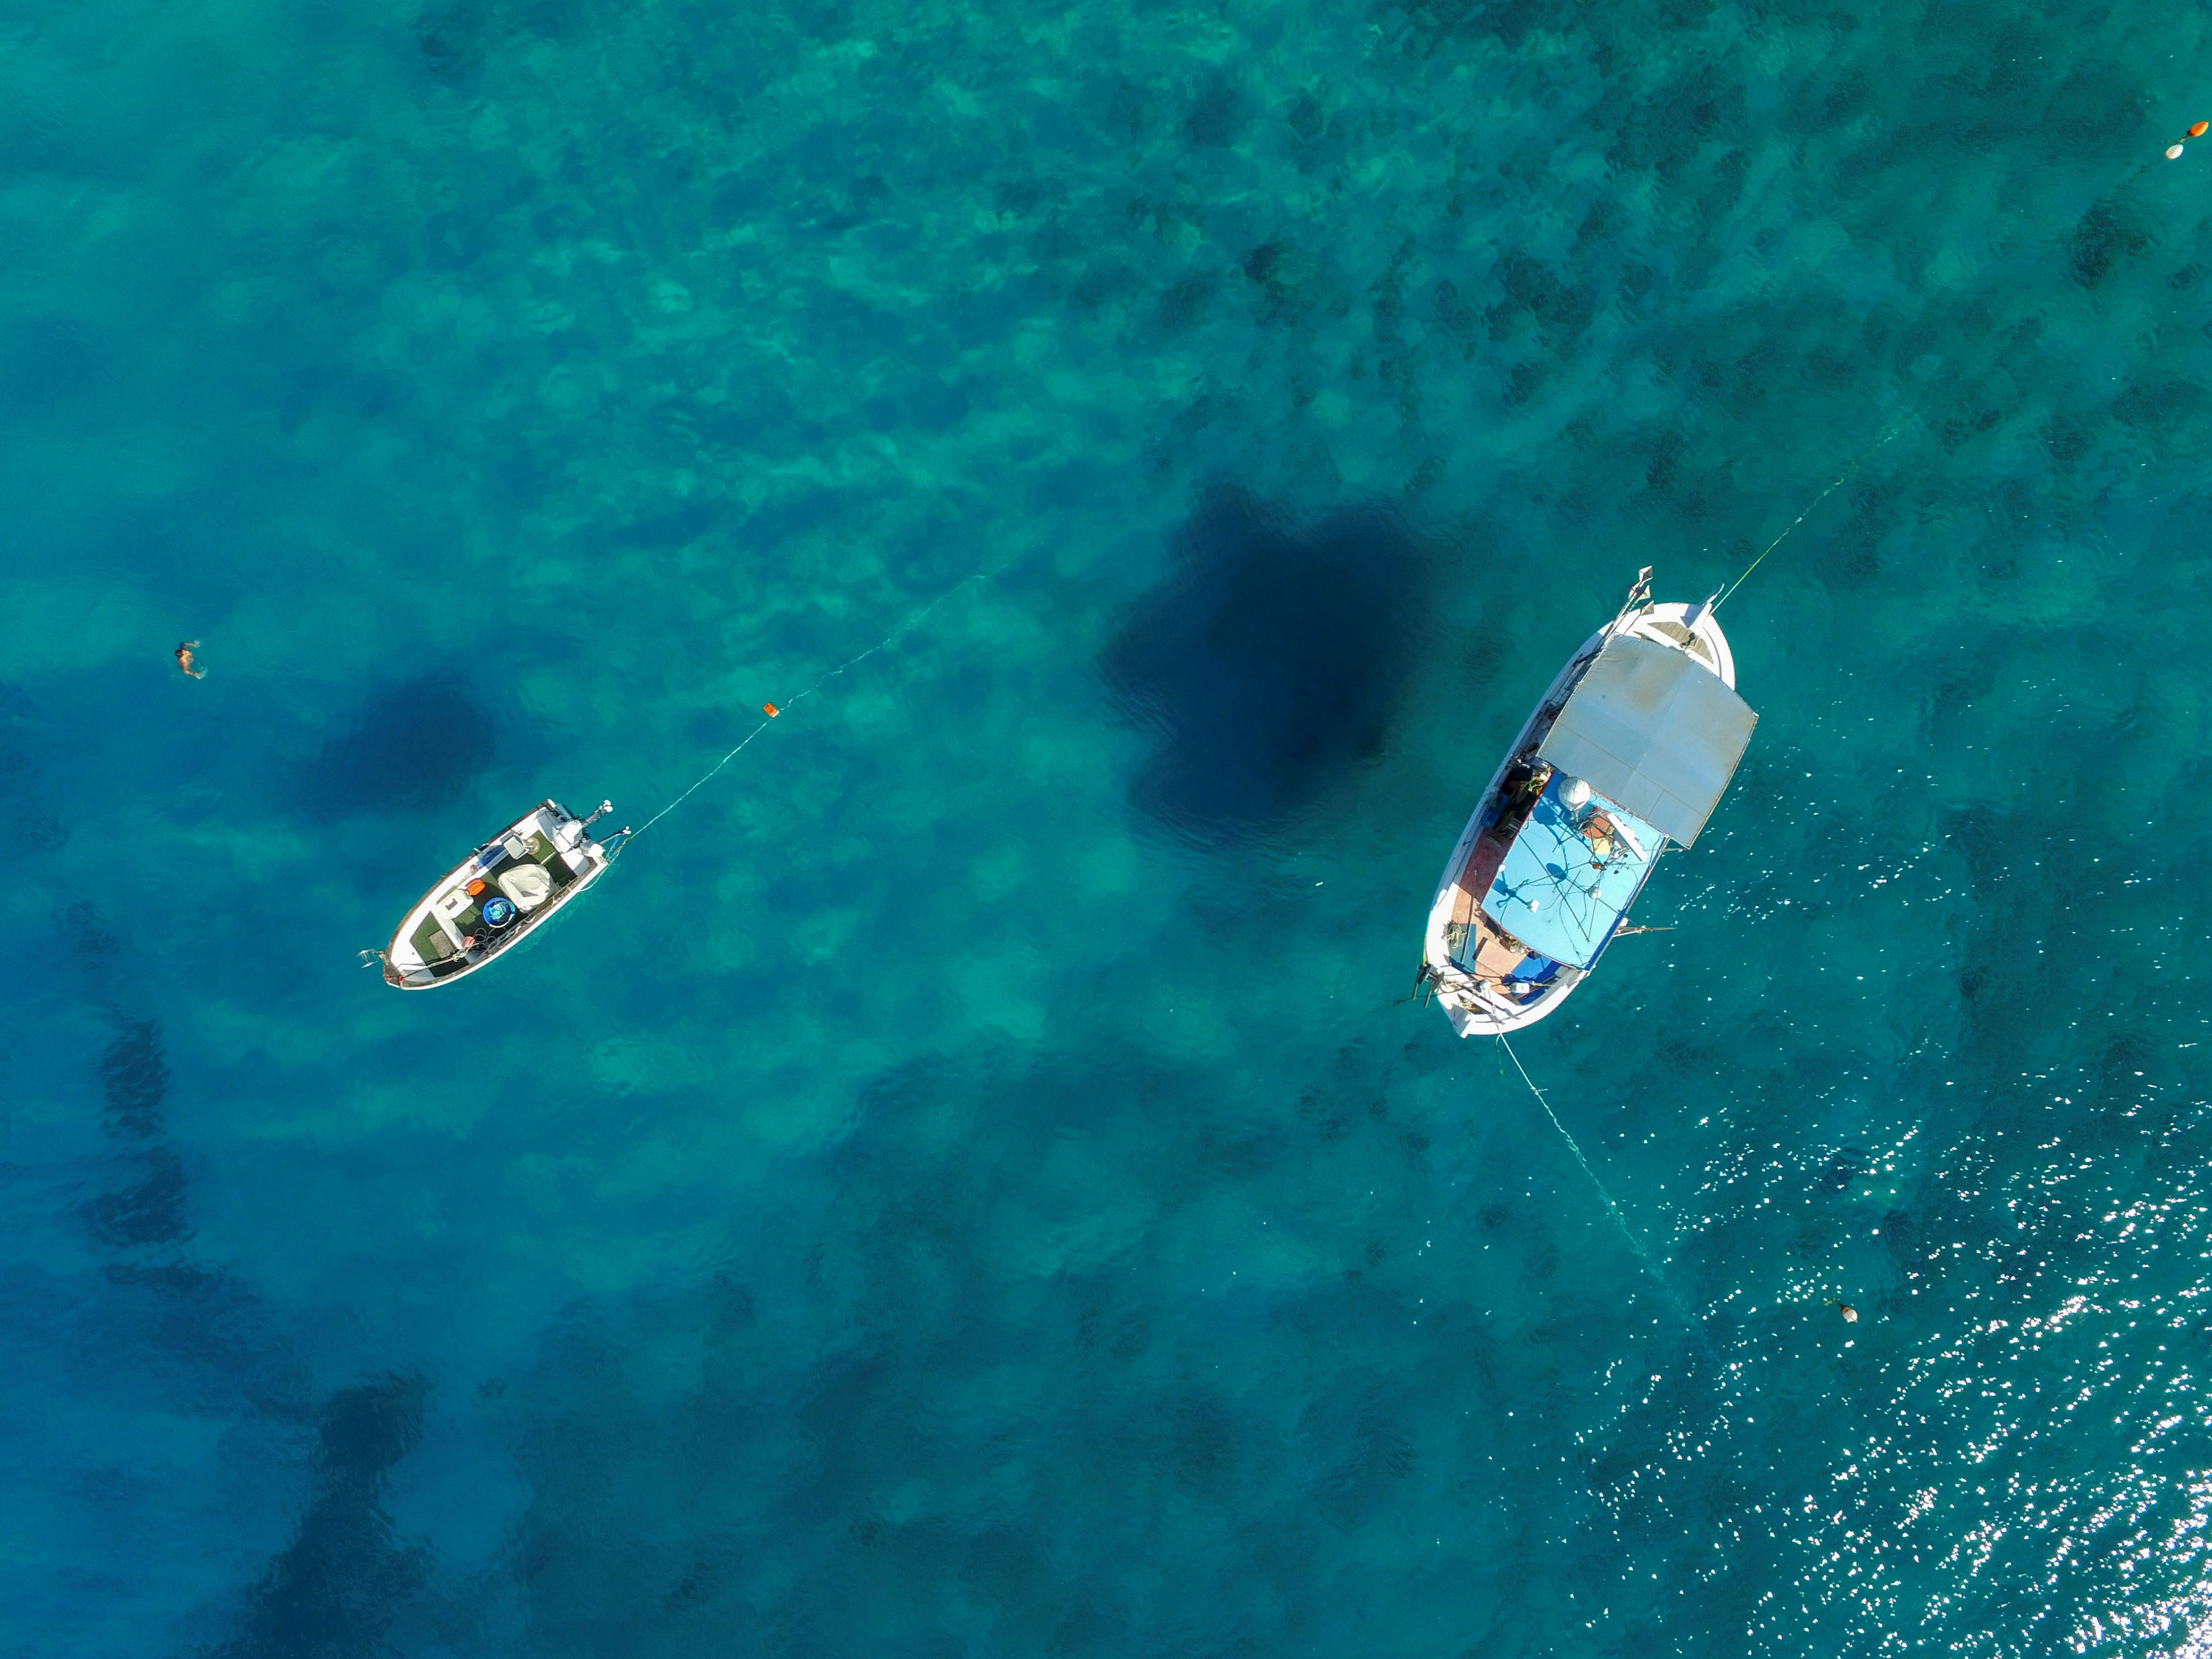 Slide 38 of 39: LEFKADA, GREECE - JUNE 08: Aerial view of boat at turquoise waters at the Porto Katsiki beach on June 08, 2016 in Lefkada,Greece. (Photo by Athanasios Gioumpasis/Getty Images)